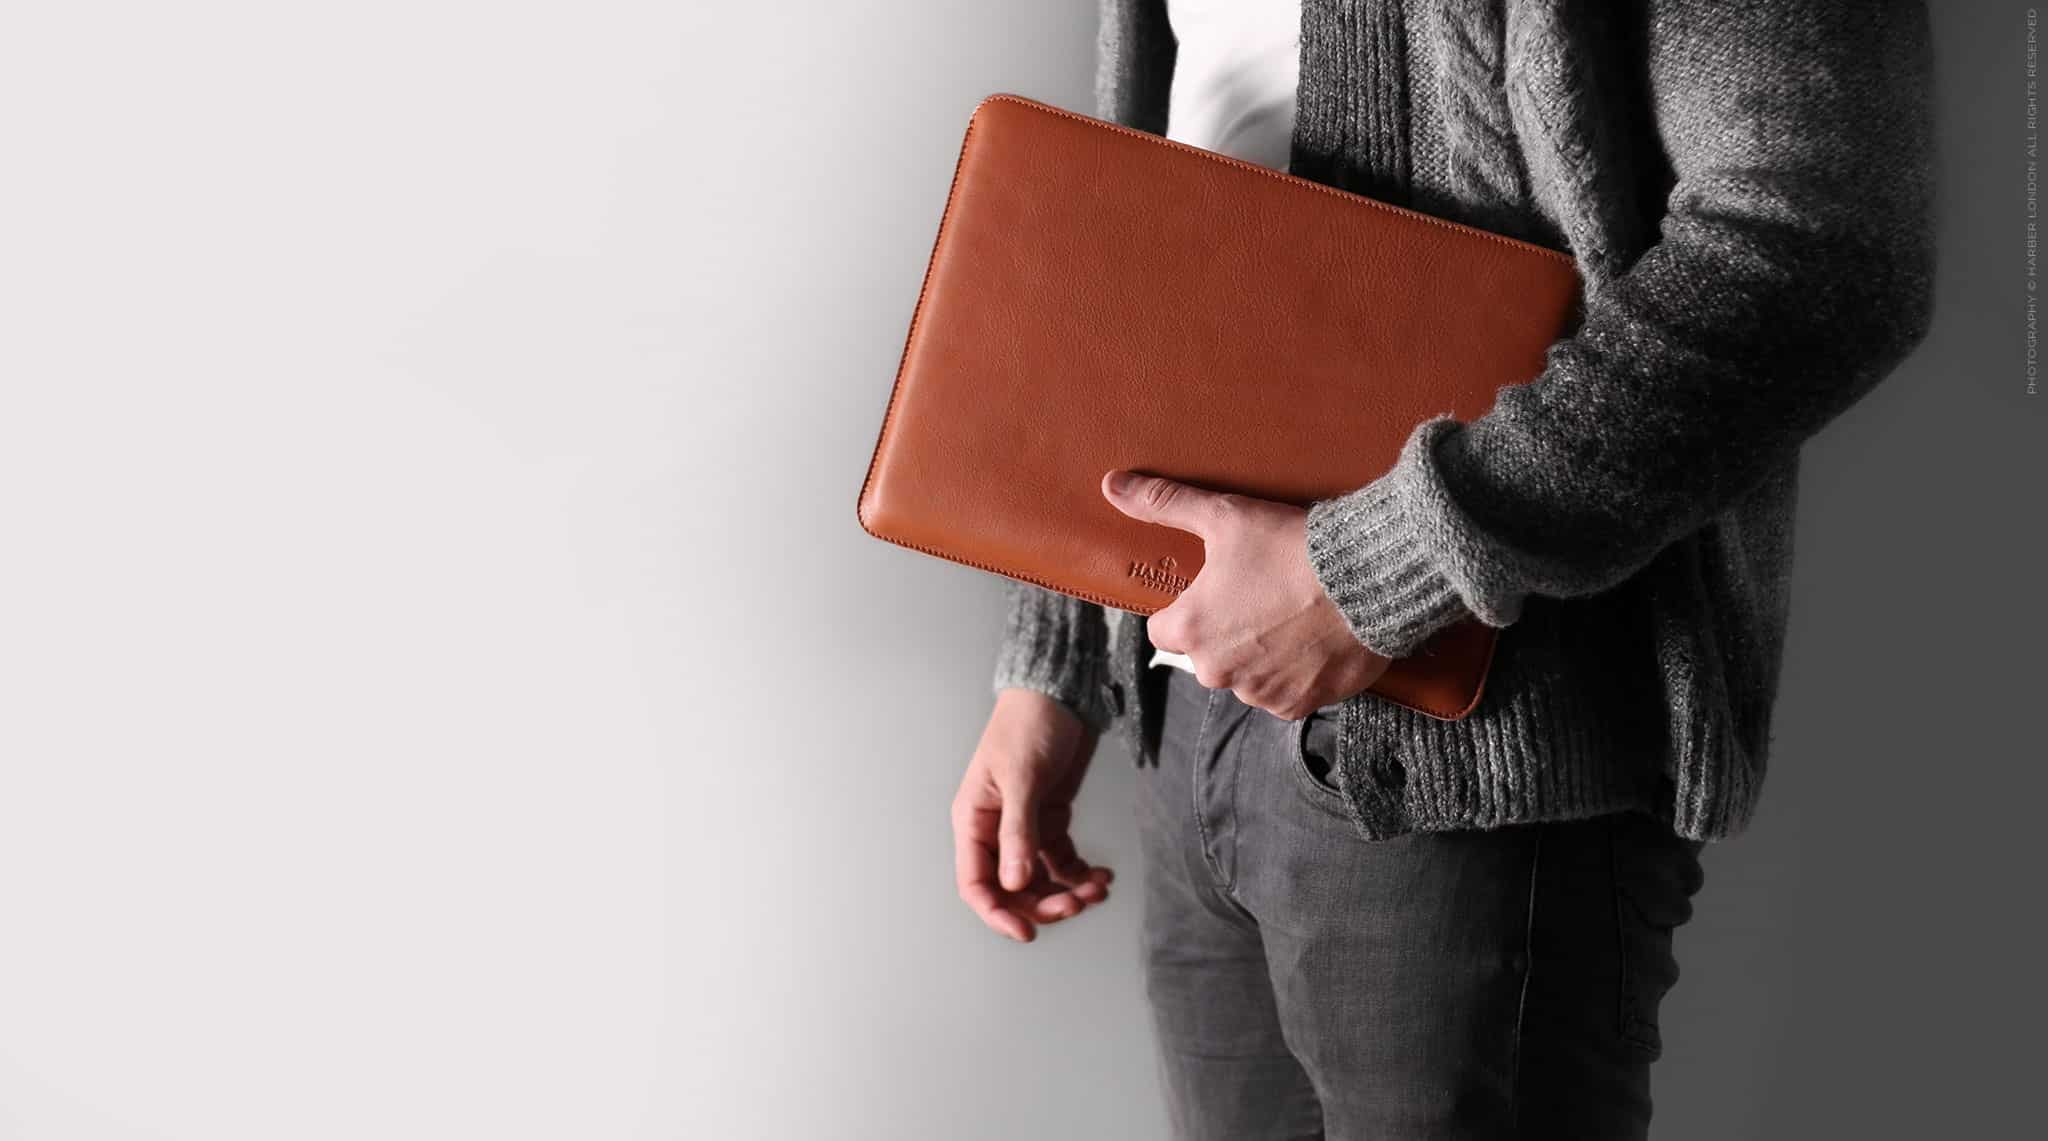 These handmade leather sleeves are the ideal companion to any MacBook.